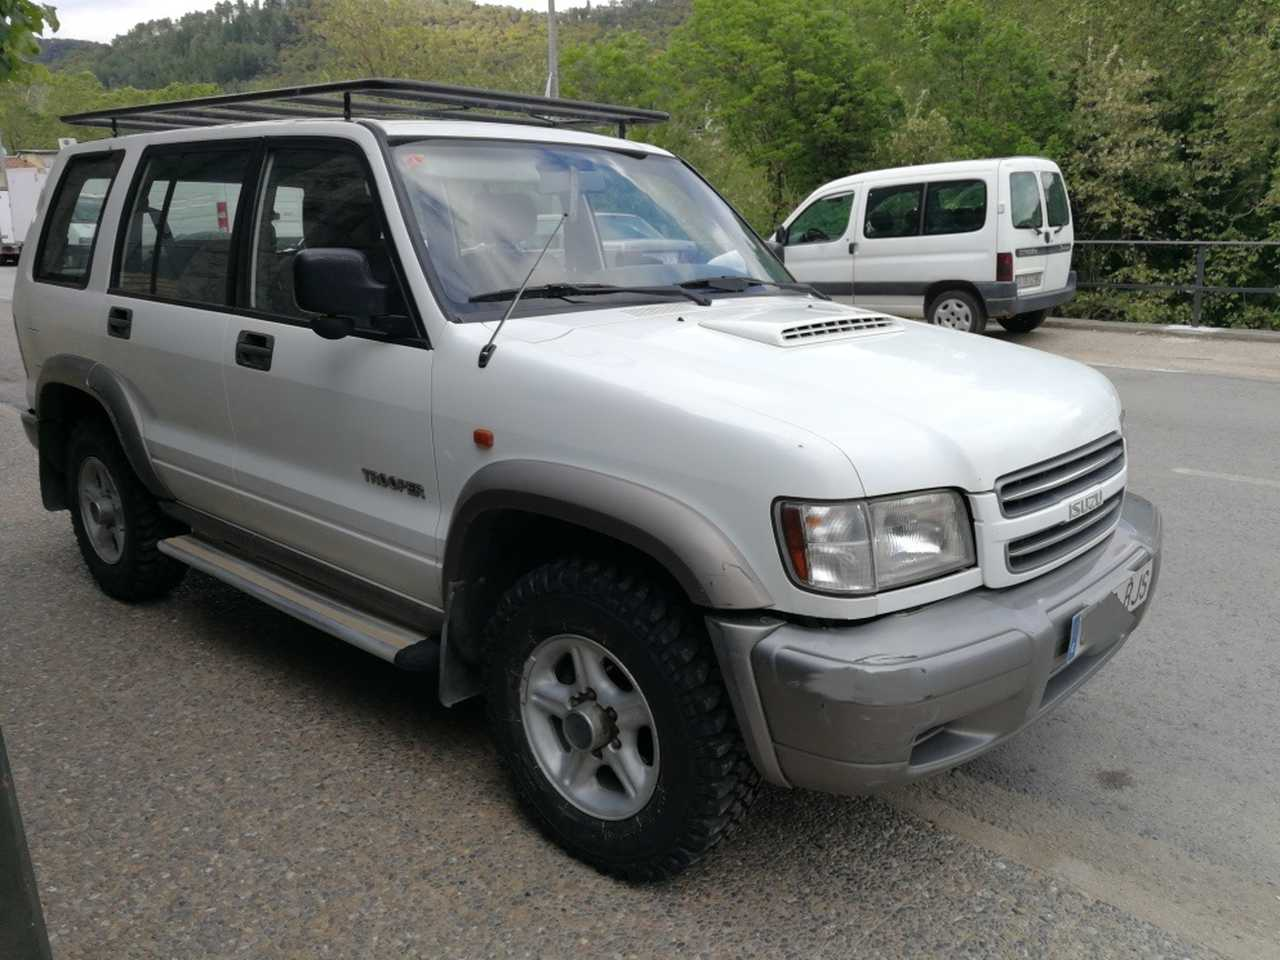 Isuzu Trooper 3.0 tdi turbo   - Foto 1